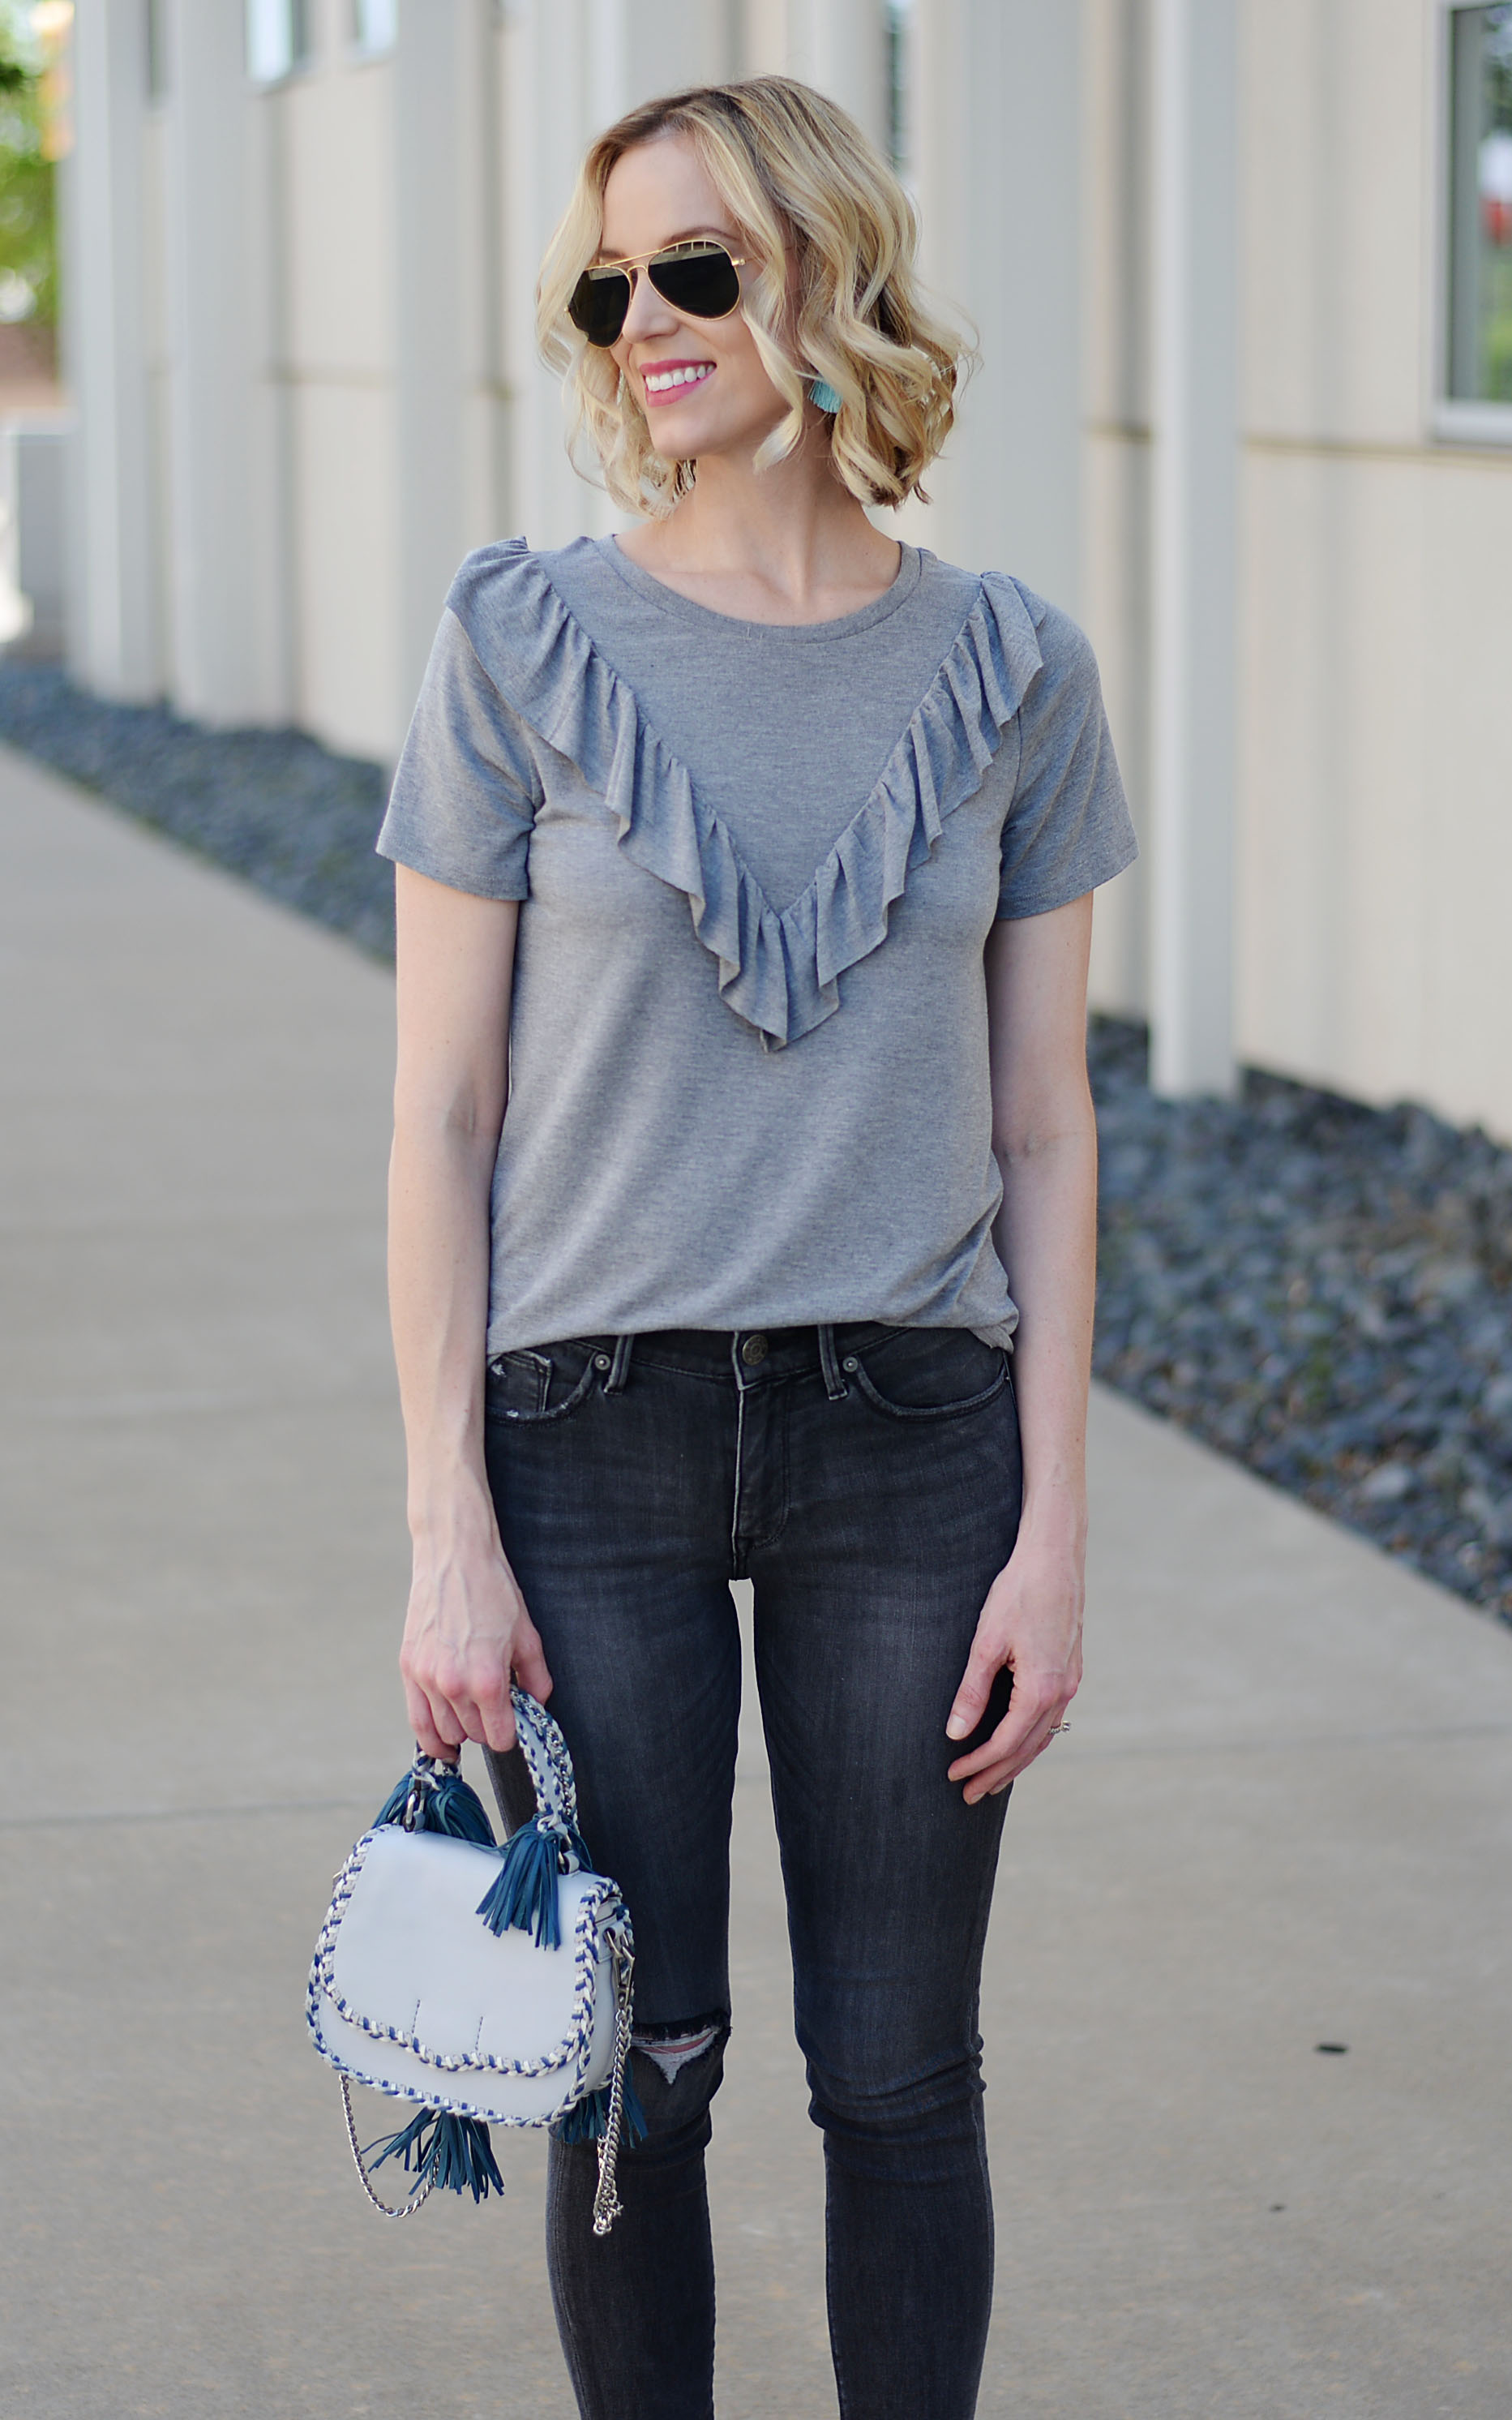 675fd4dea55 ... monochrome grey casual outfit with blue Rebecca Minkoff tassel bag and  bow slides ...